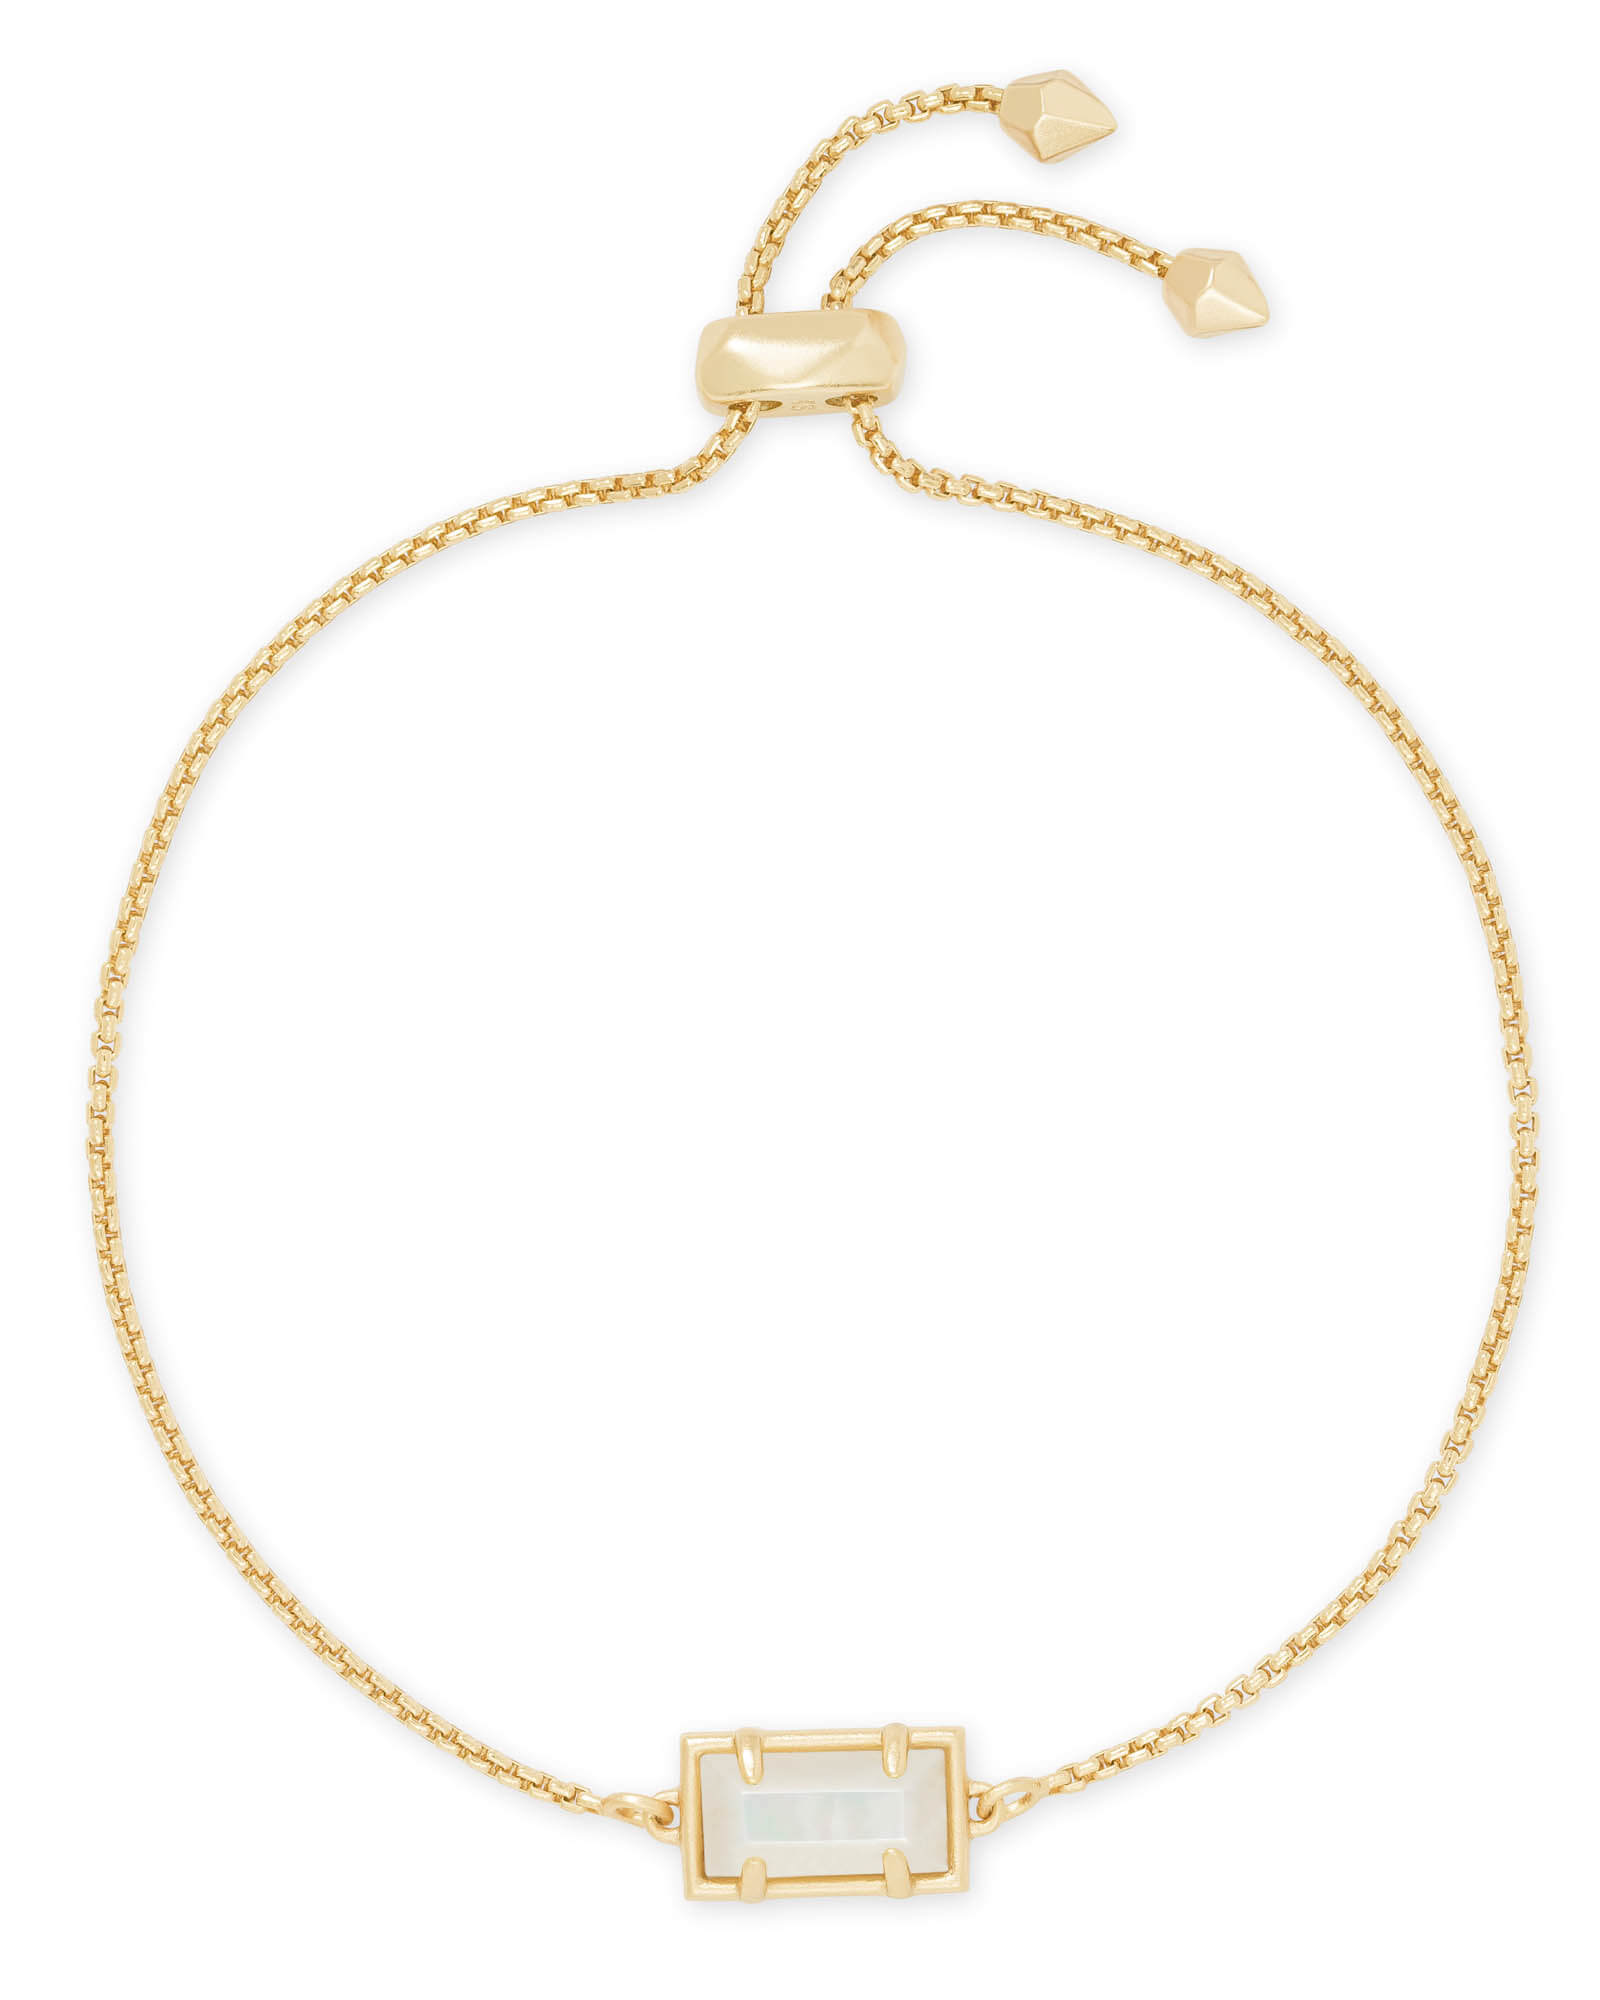 Phillipa Gold Chain Bracelet in Ivory Pearl